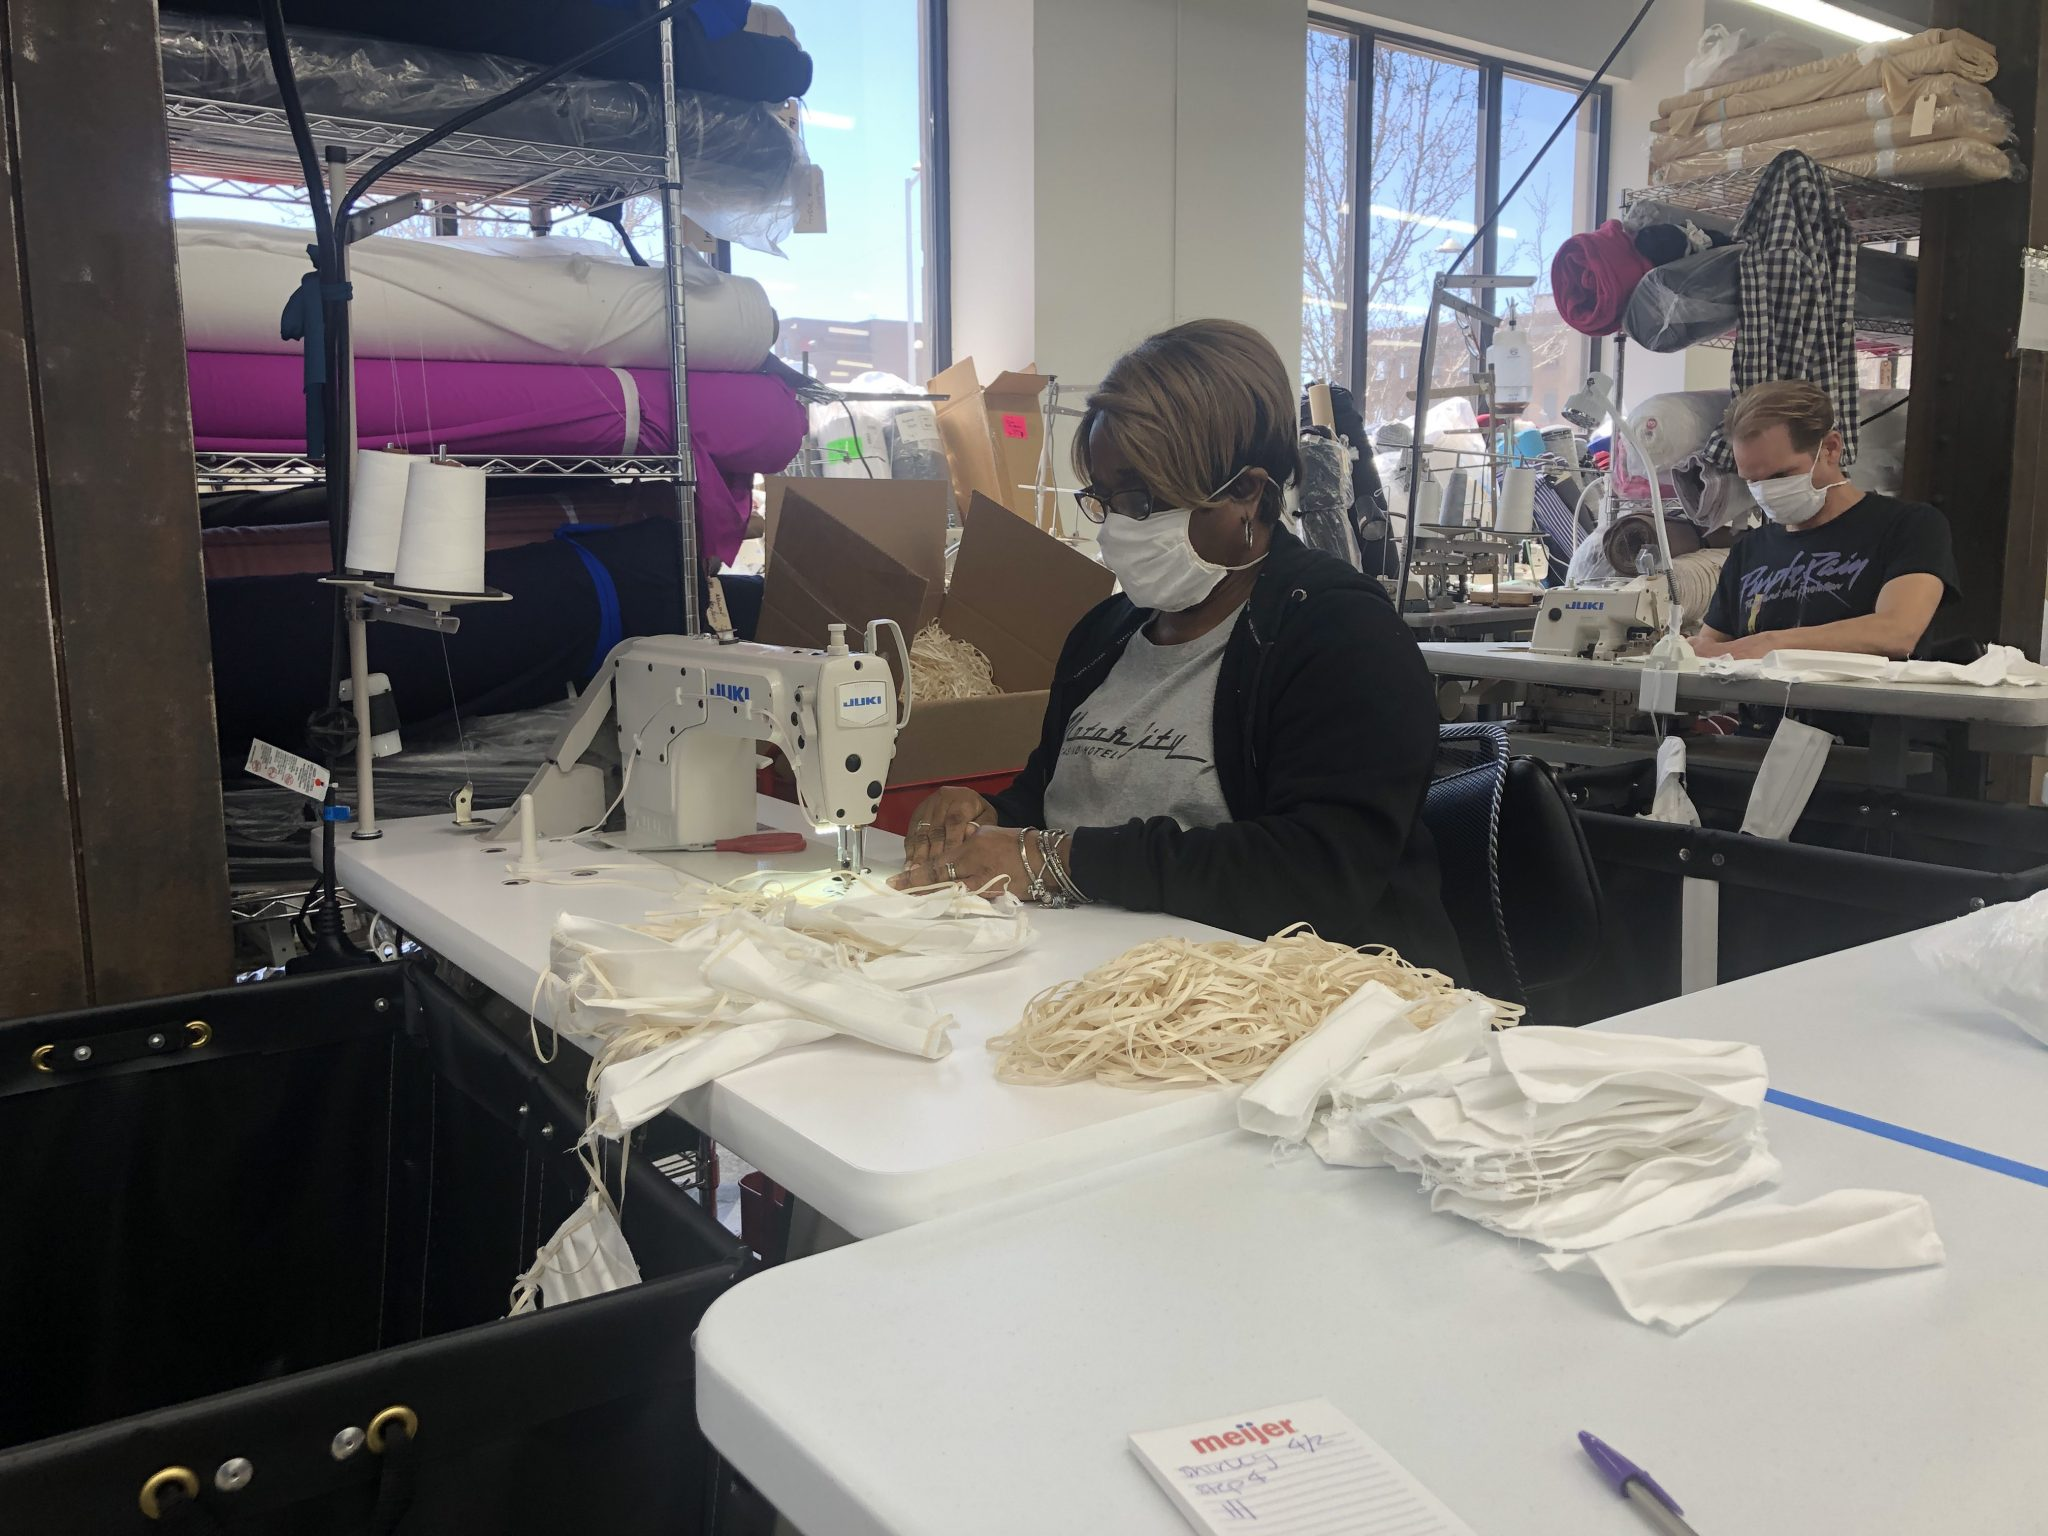 MASKS BEING MANUFACTURED BY DETROIT SEWN. PHOTO G1 IMPACT